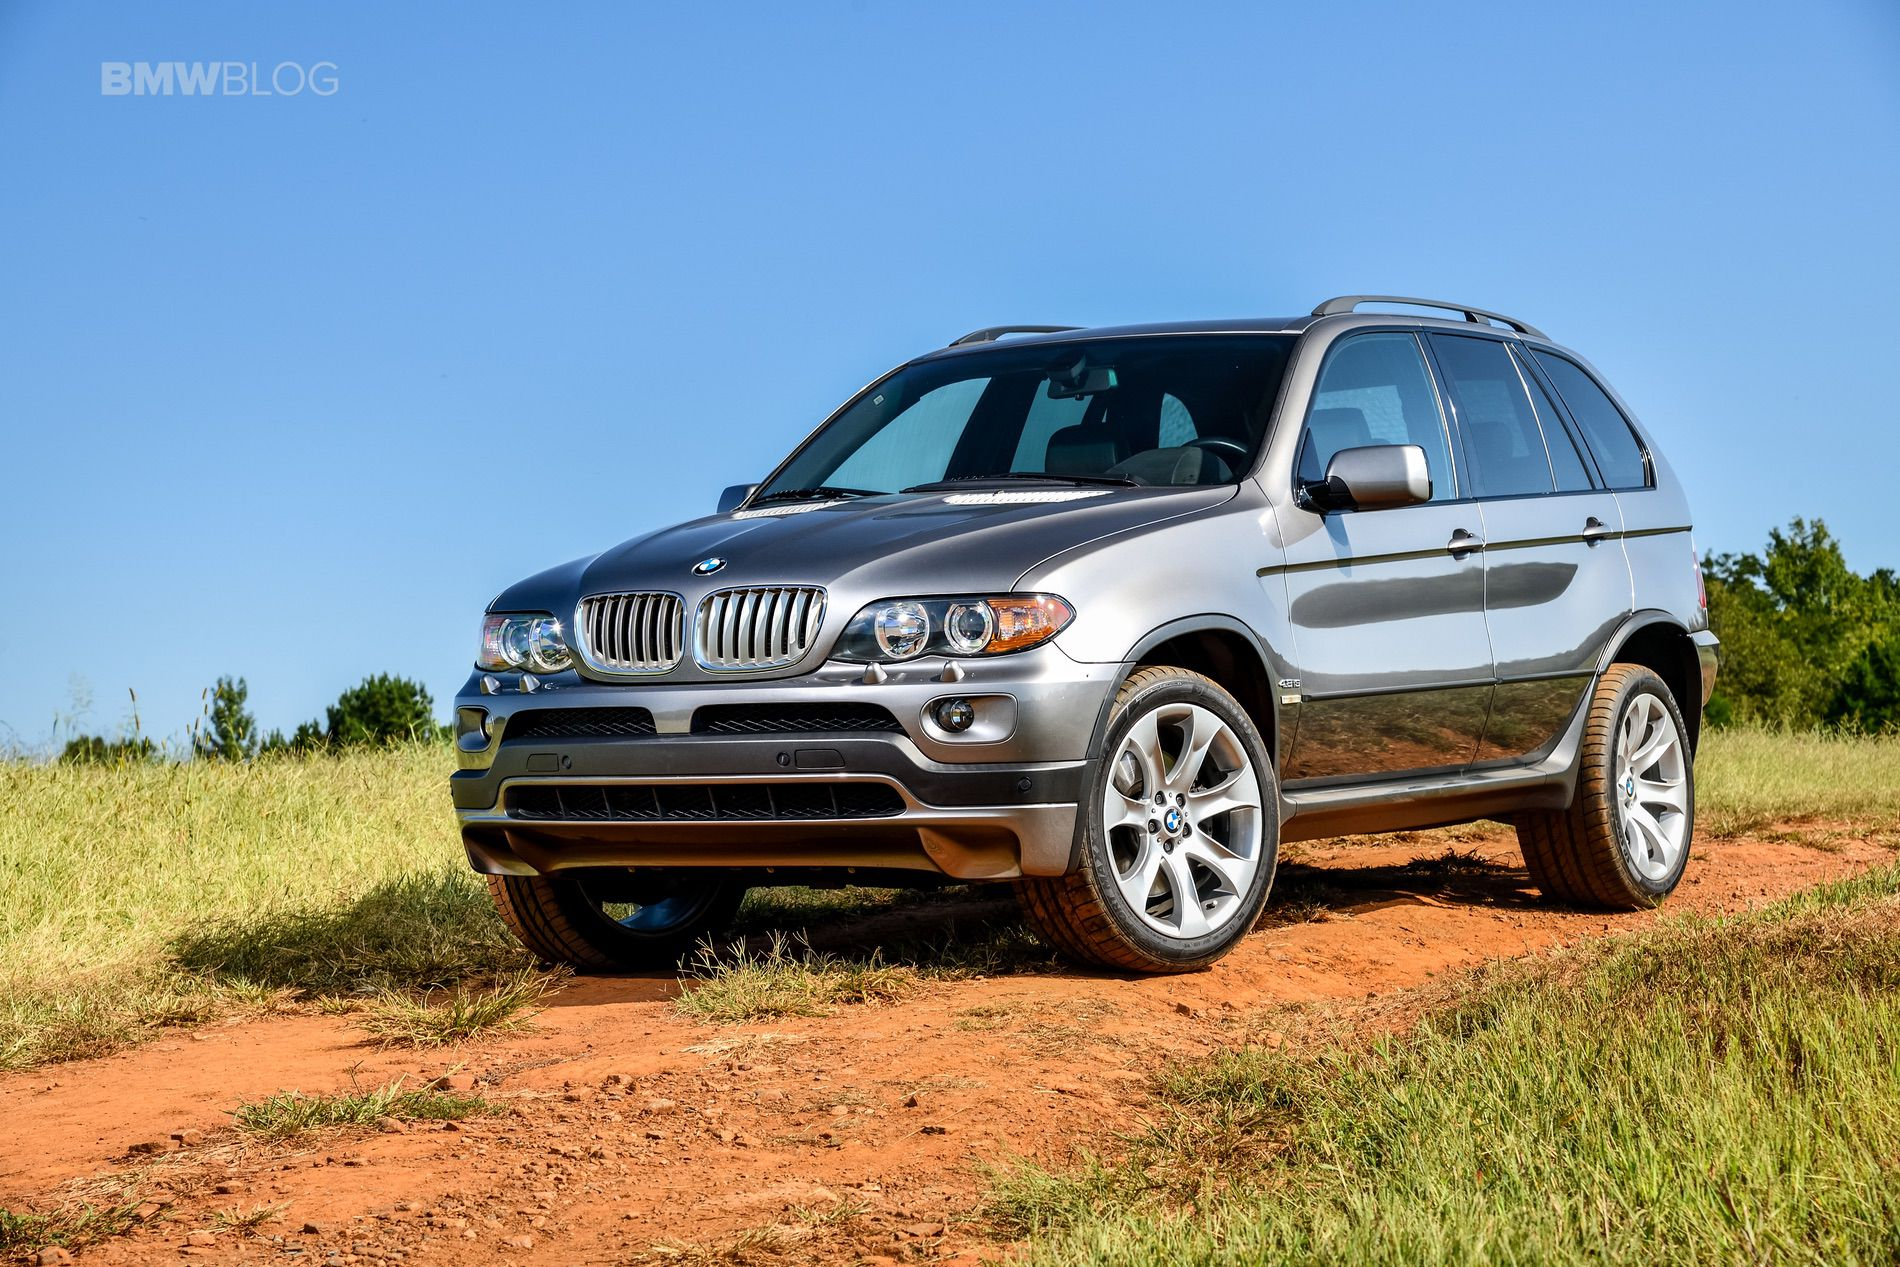 BMW X5 first generation 02